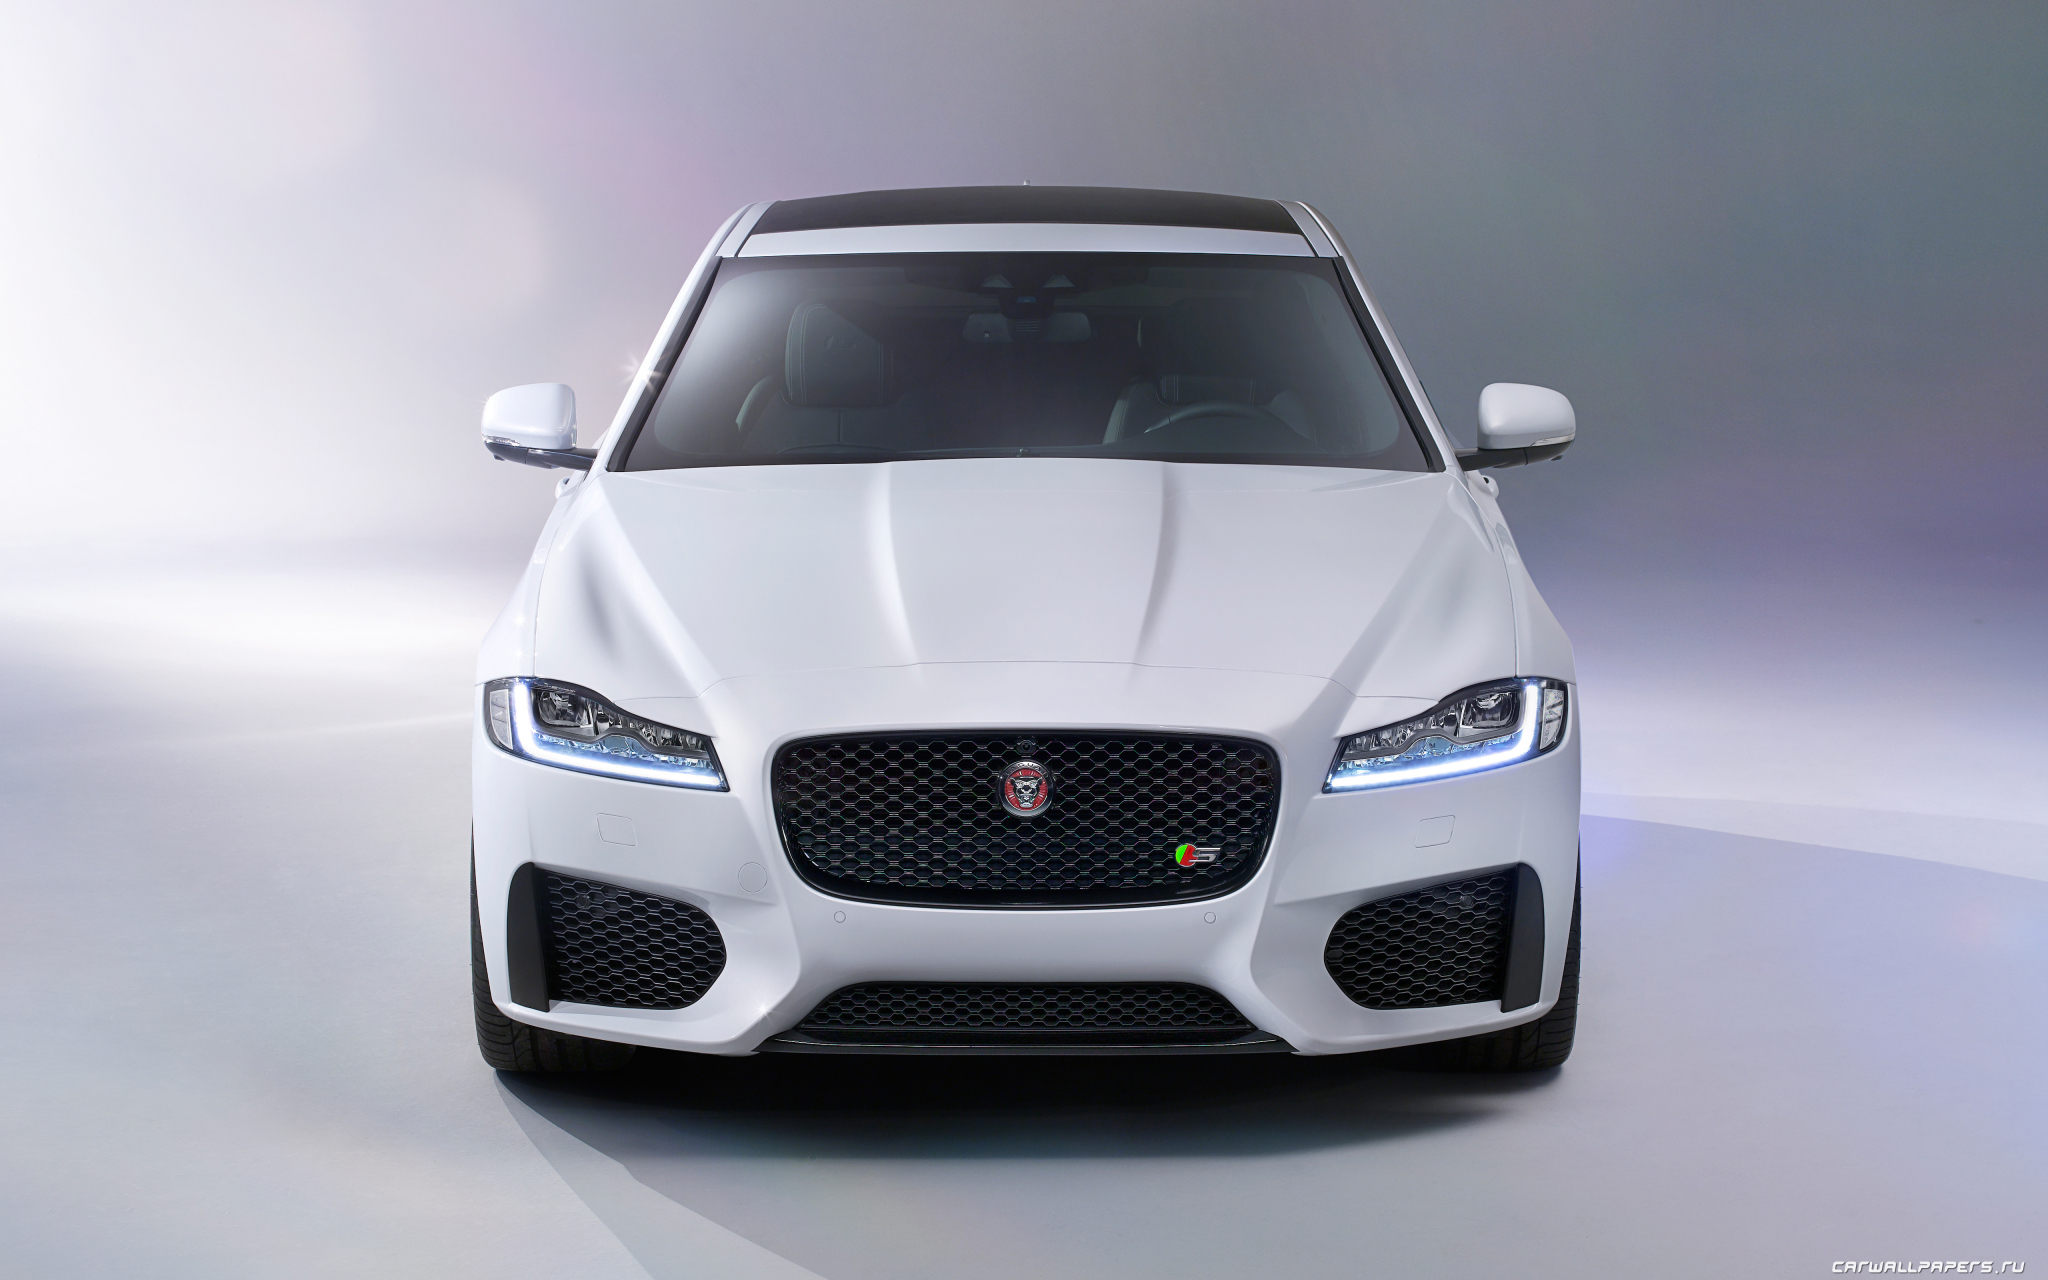 jaguar xf 2015 hd wallpapers free download